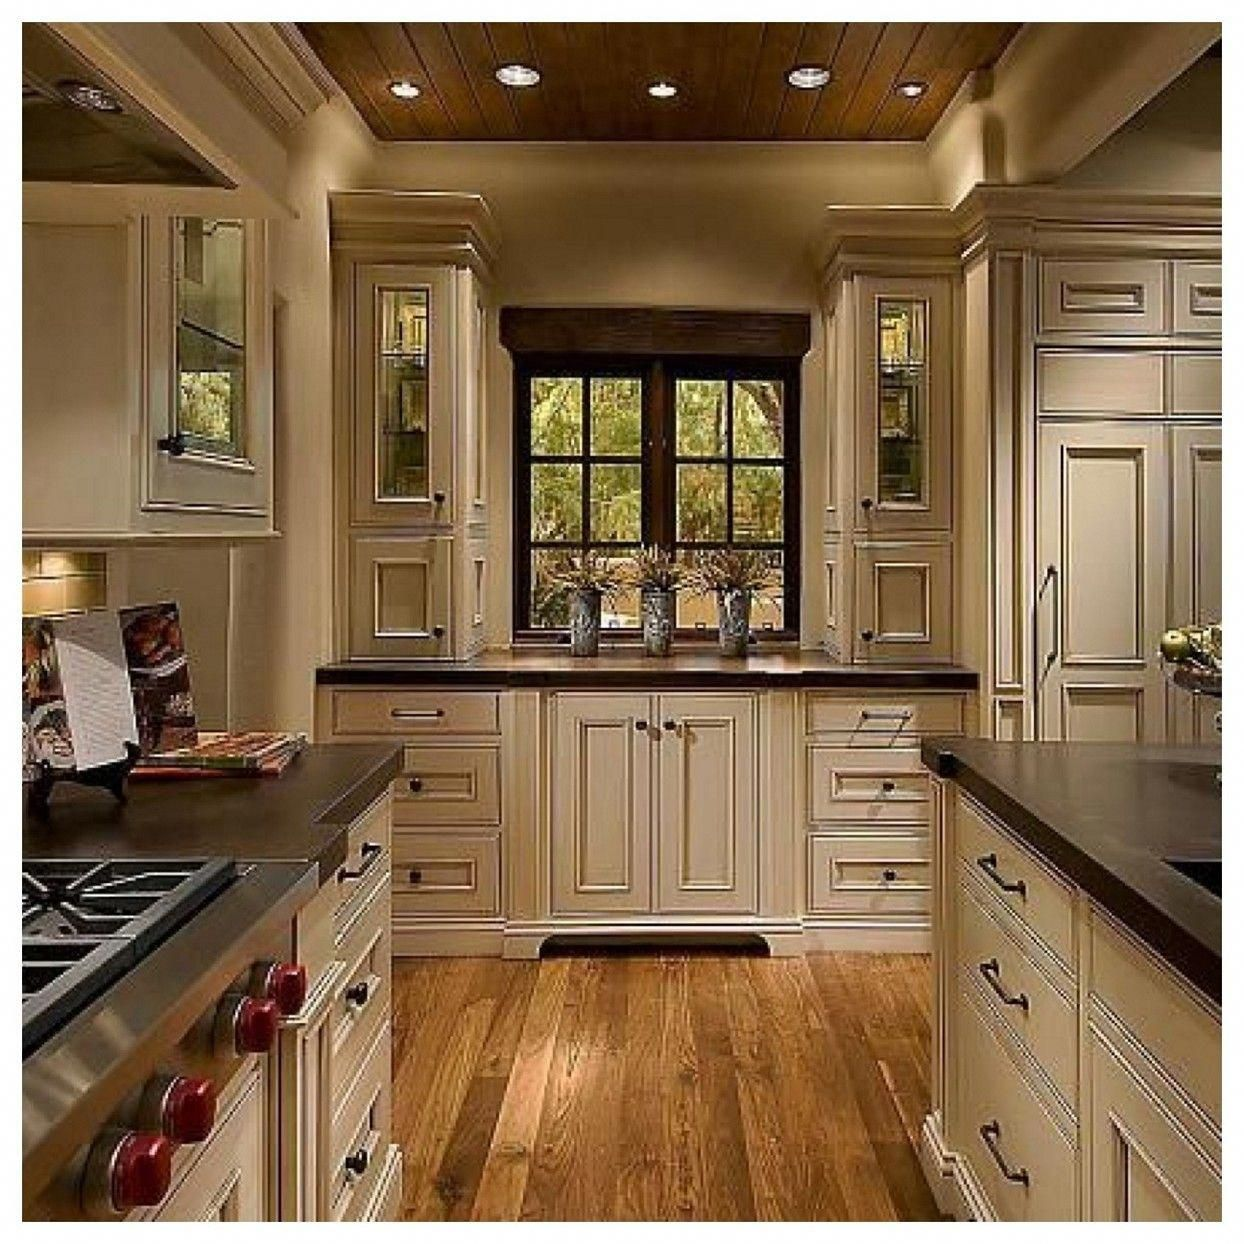 25 Best Cherry Kitchen Cabinets Ideas On Internet I Think It Would Be Great If I Build Th Kitchen Cabinet Design Kitchen Cabinet Layout Wood Kitchen Cabinets